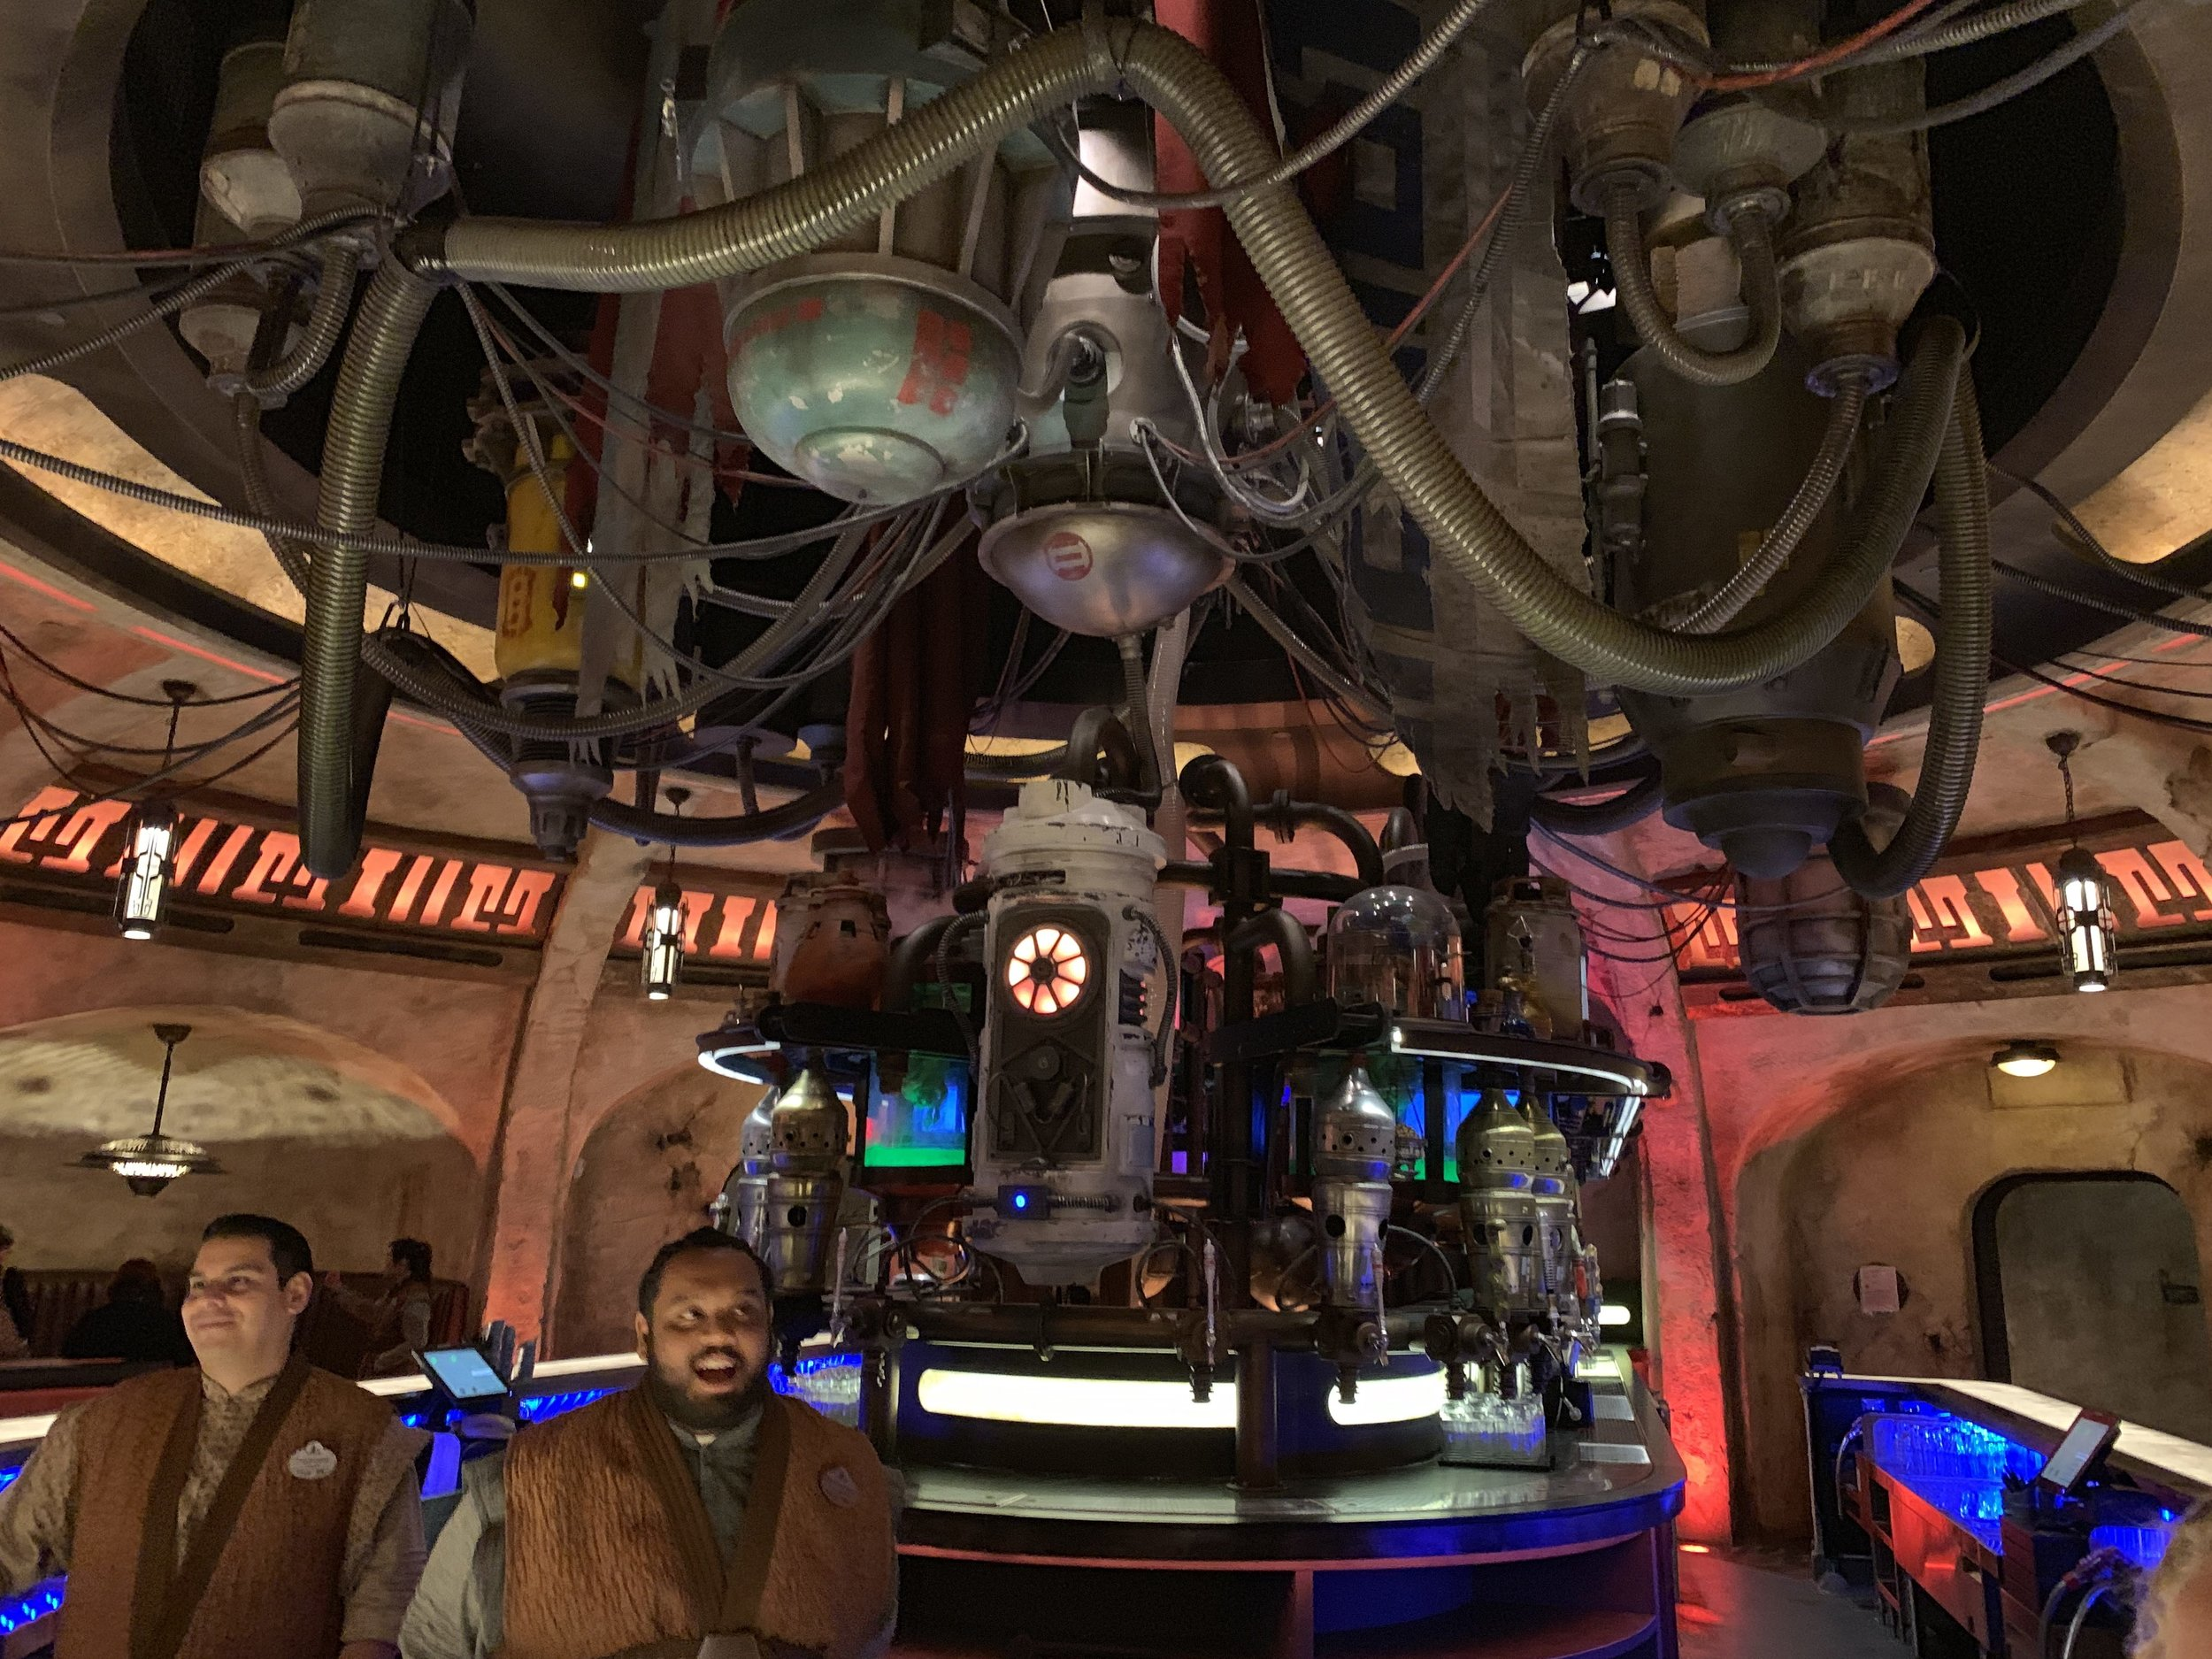 Inside Oga's Cantina is equality fun to explore